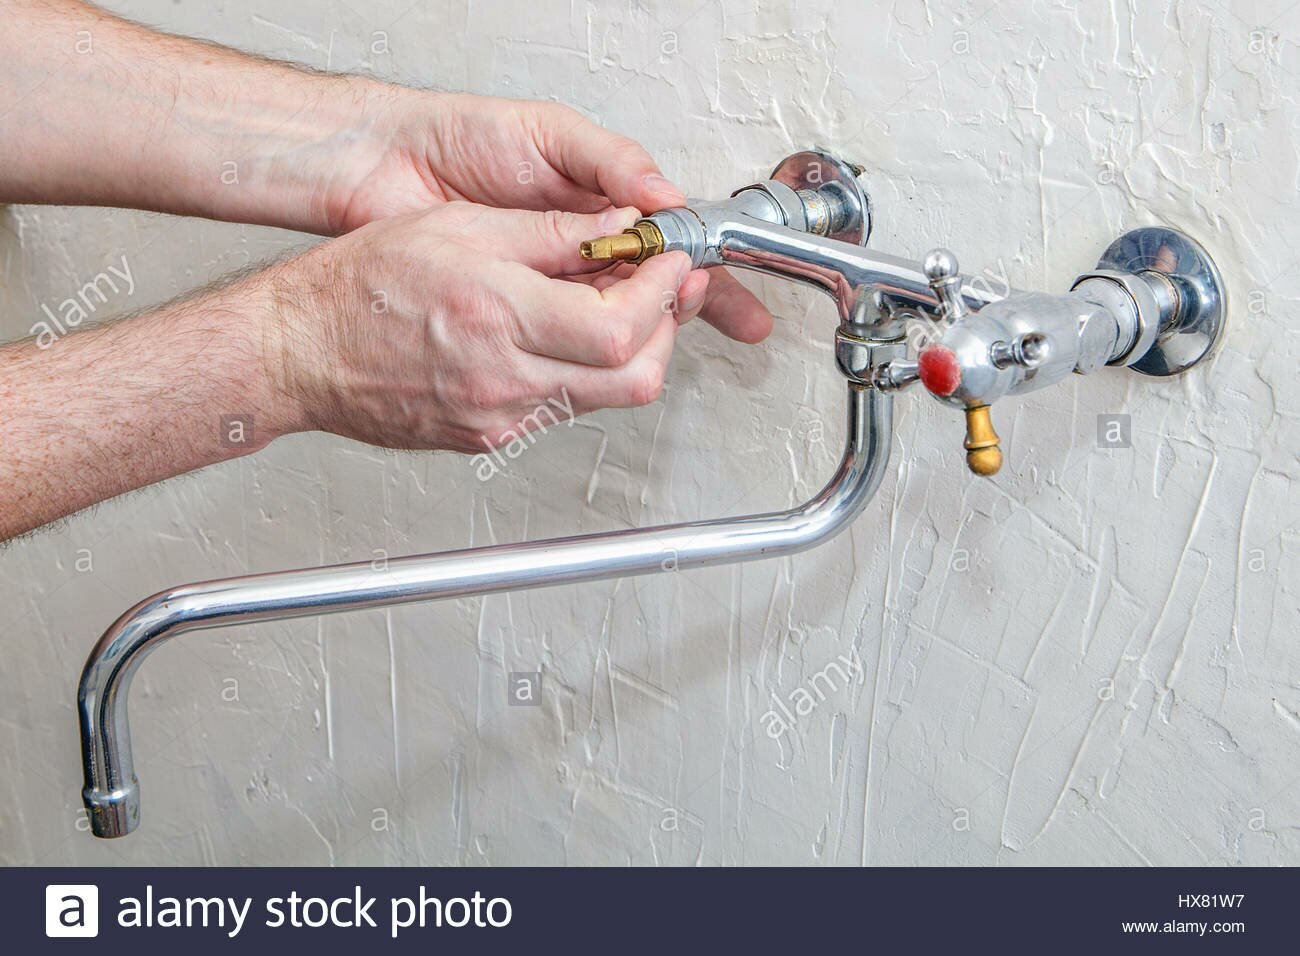 How to Repair A Leaking Kitchen Faucet | How to Fix A Dripping Kitchen Faucet | Fix Dripping Bathroom Faucet